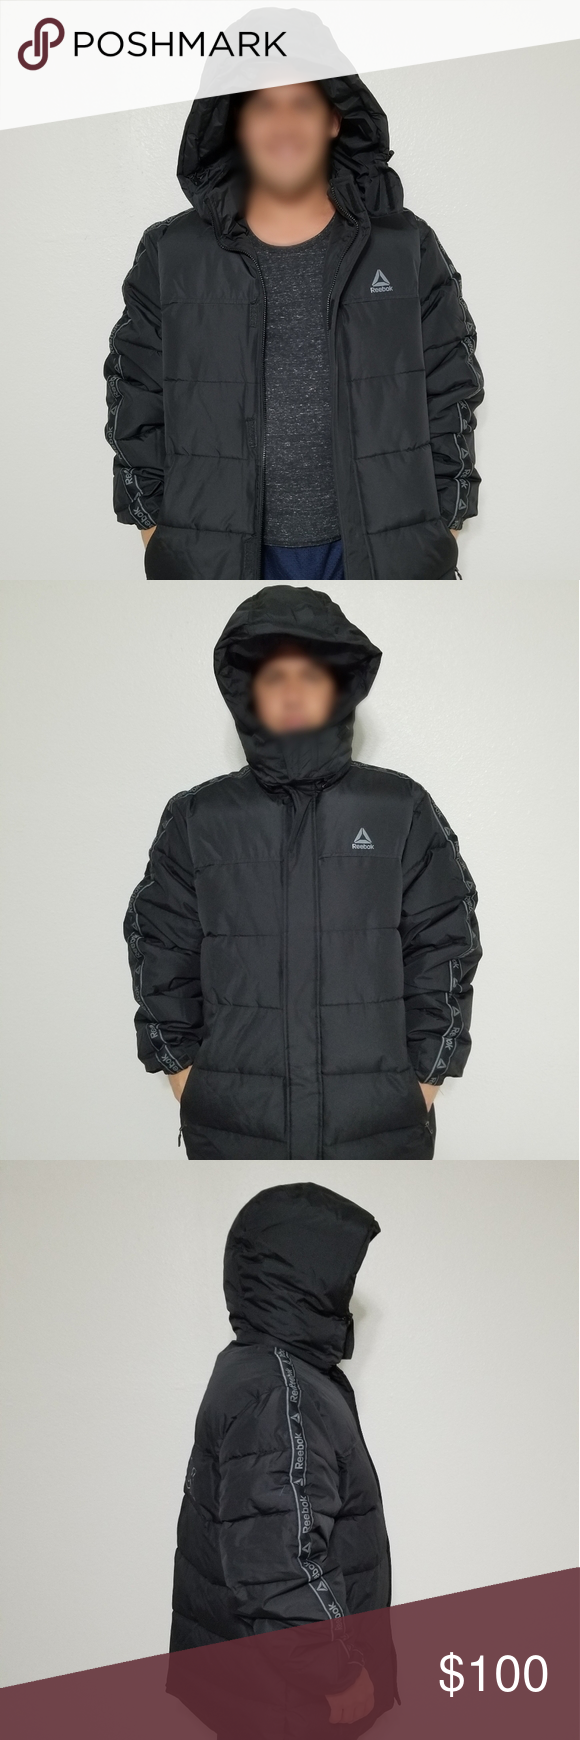 Reebok Men S Winter Jacket This Reebok Men S Winter Jacket Is New With Tag Excellent For Your Winter Adventures Winter Jackets Winter Jacket Men Mens Jackets [ 1740 x 580 Pixel ]